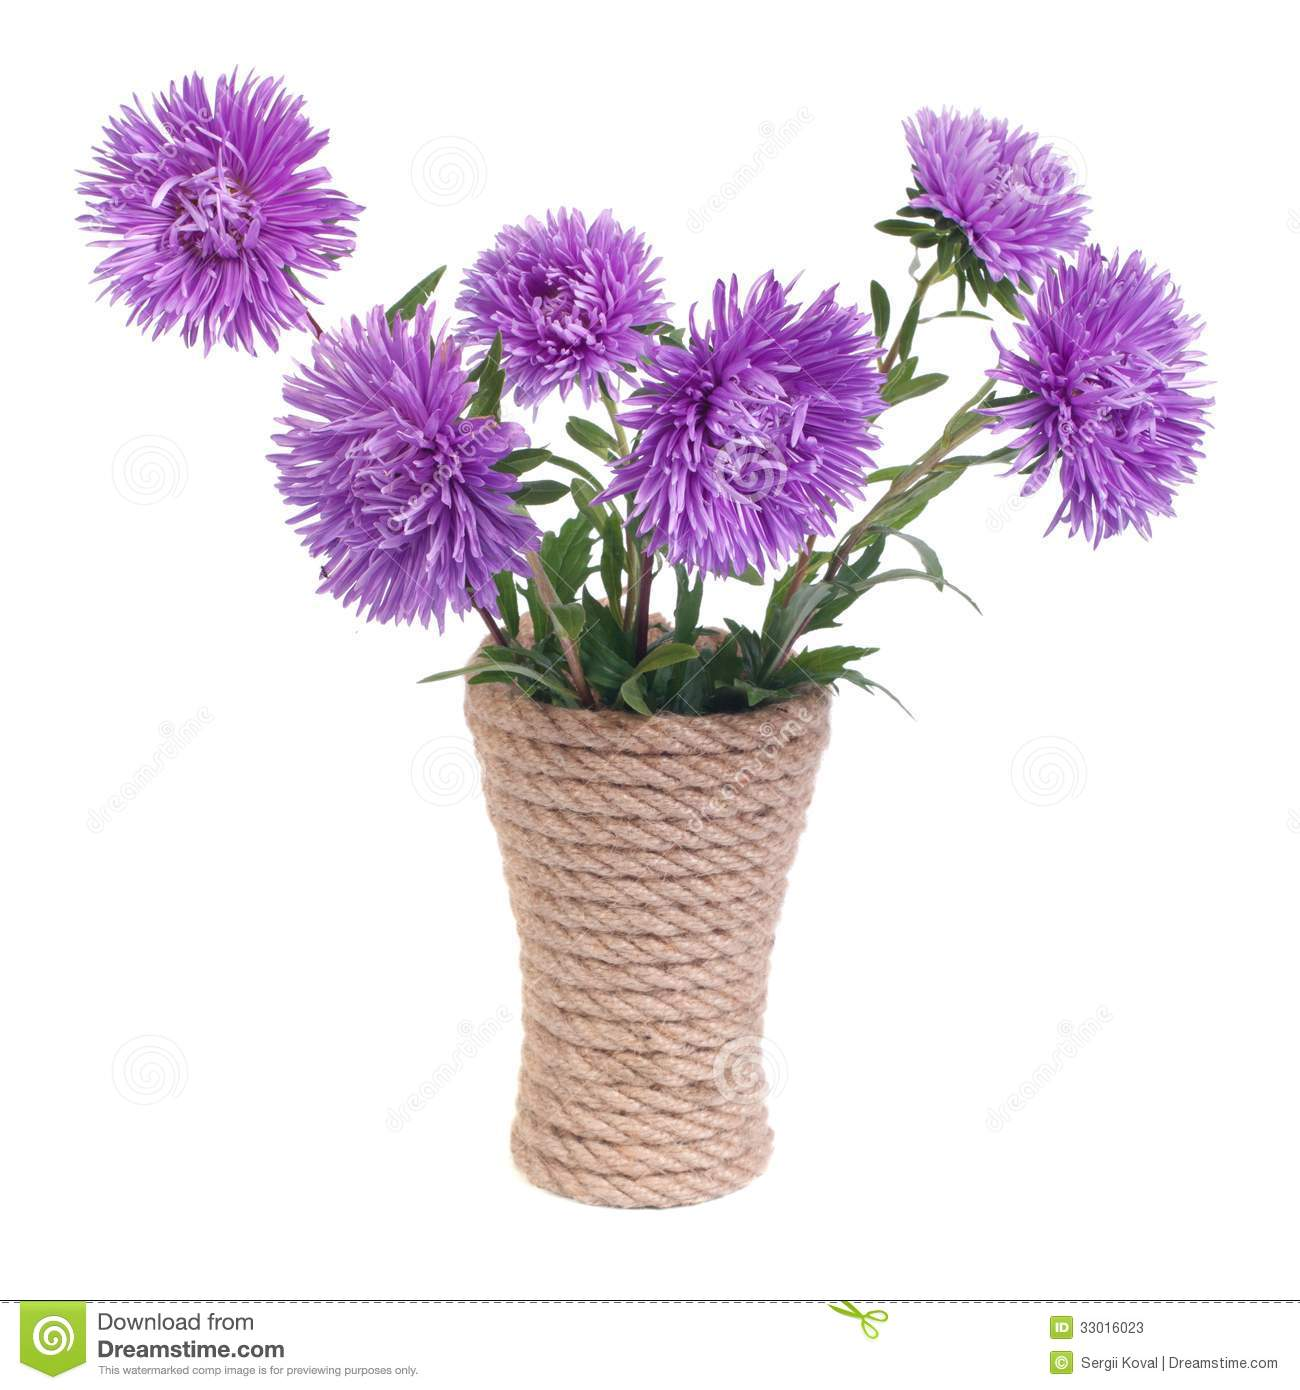 The Beautiful Blue Aster Flowers In A Vase Stock Image